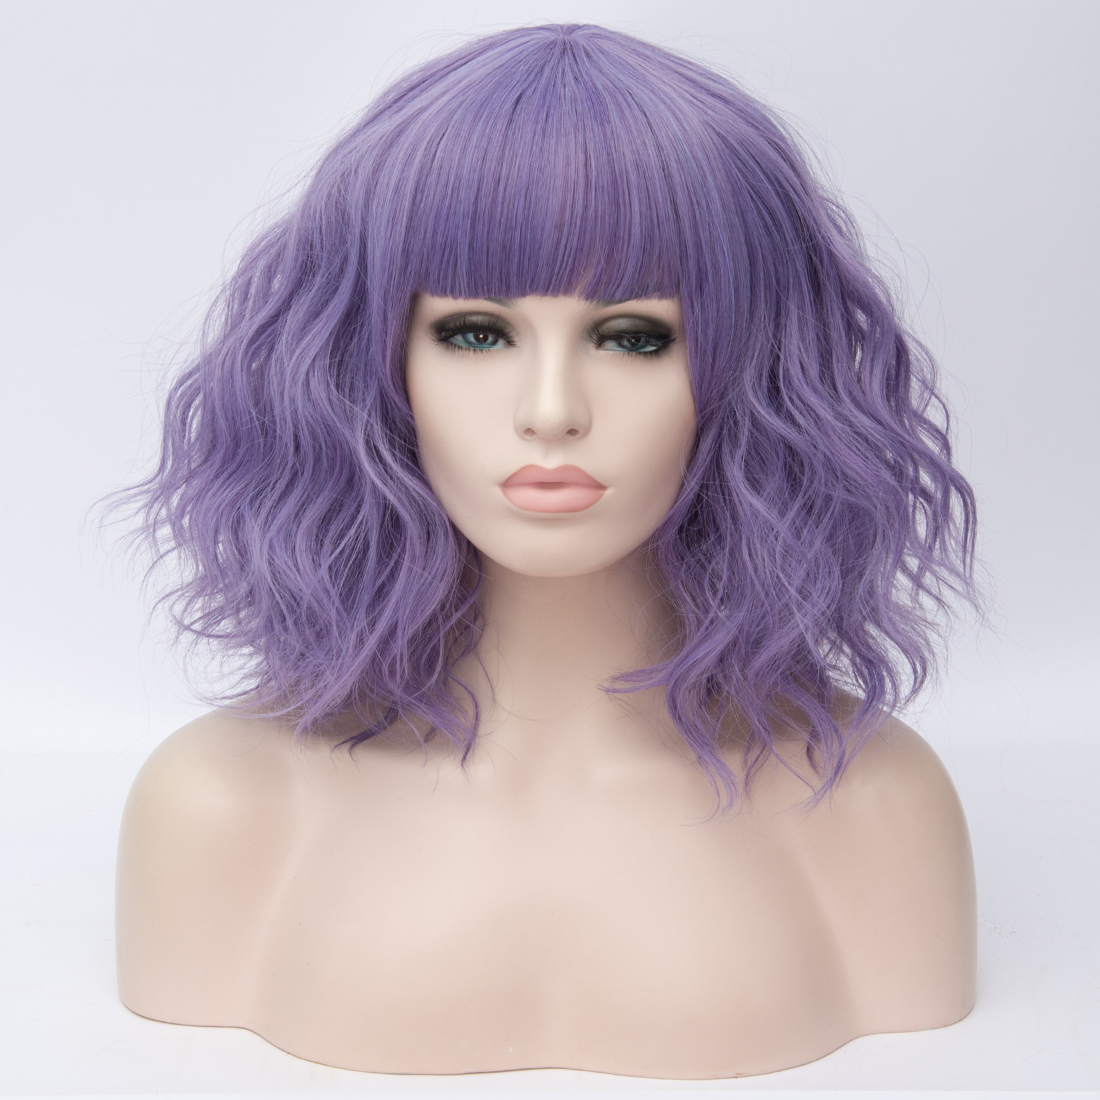 H6931aa872c0c40e7b046458b1c4f9eb5l - Similler Short Synthetic Wig for Women Cosplay Curly Hair Heat Resistance Ombre Color Blue Purple Pink Green Orange Two Tones